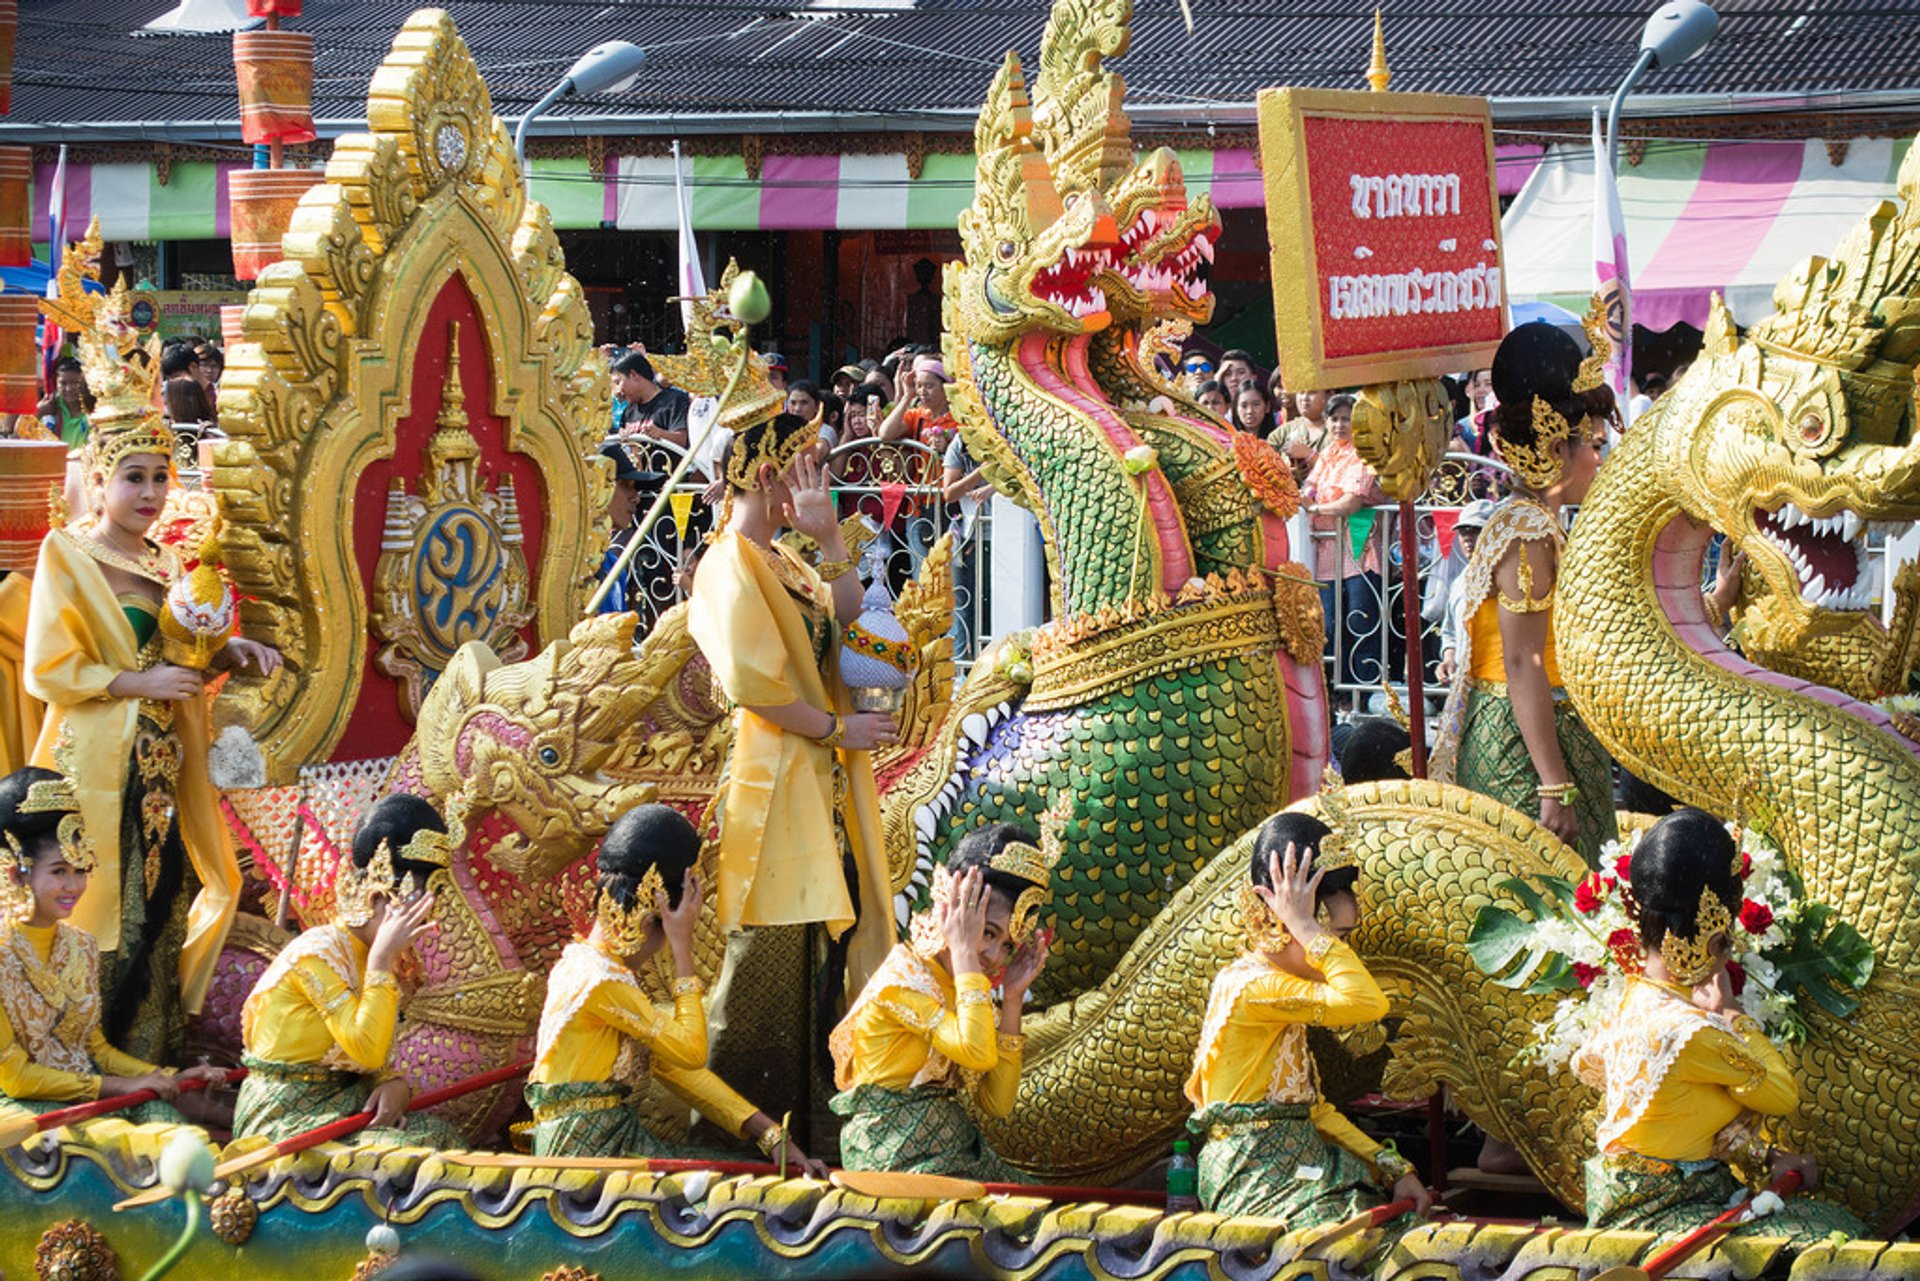 Best time for Rub Bua Festival in Thailand 2020